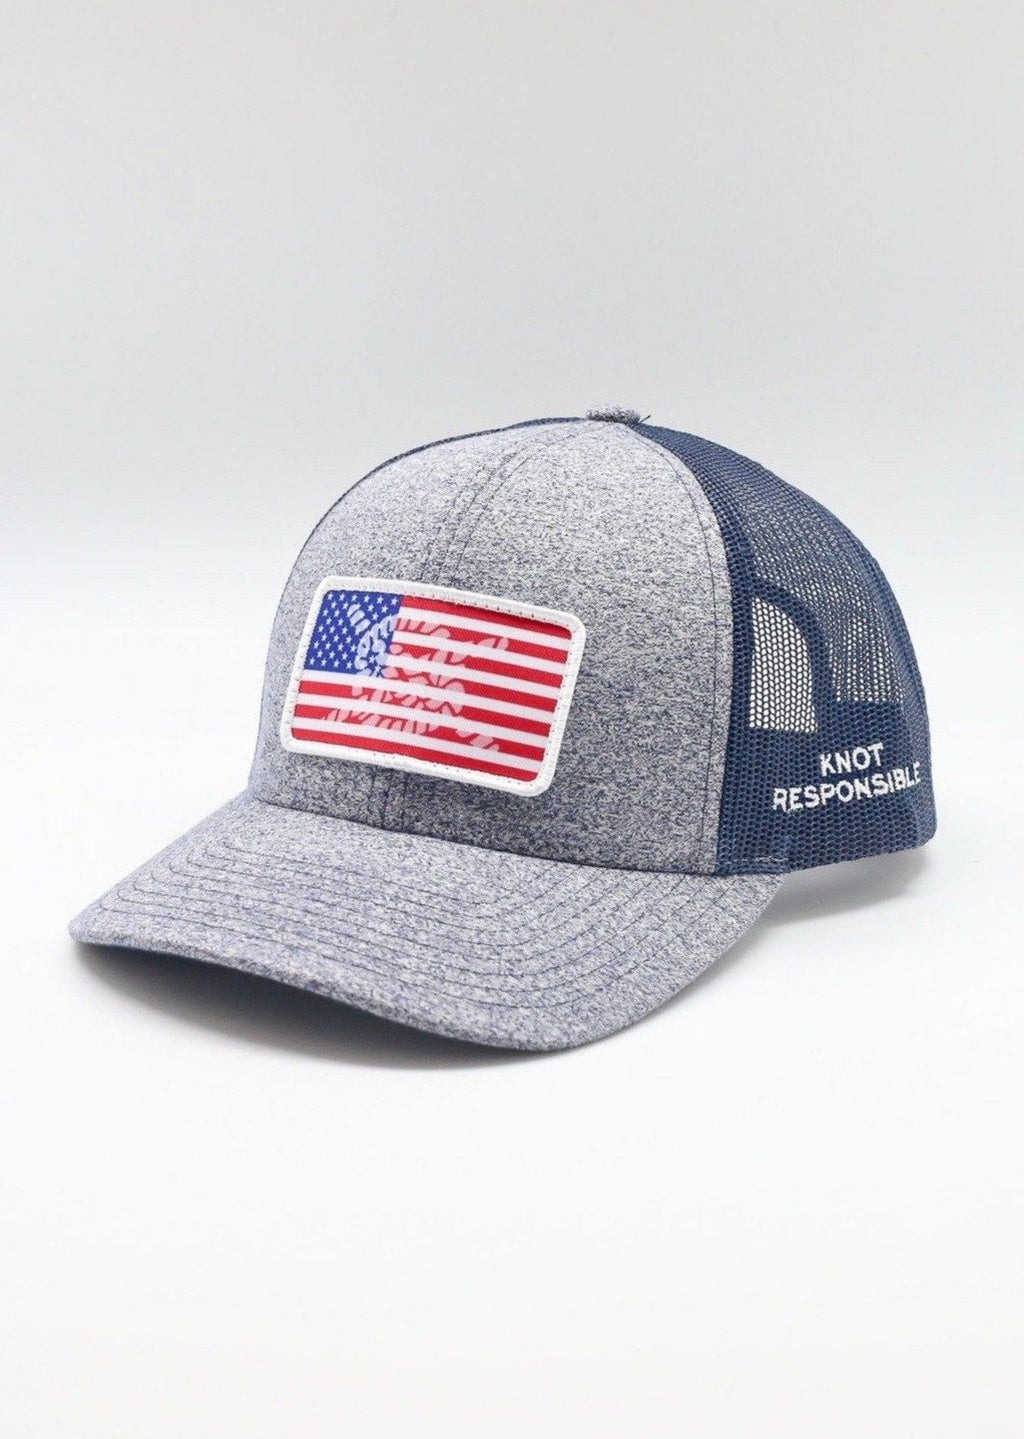 Limited Edition USA Patch Low Pro Trucker Hat- Navy/ Heather Navy